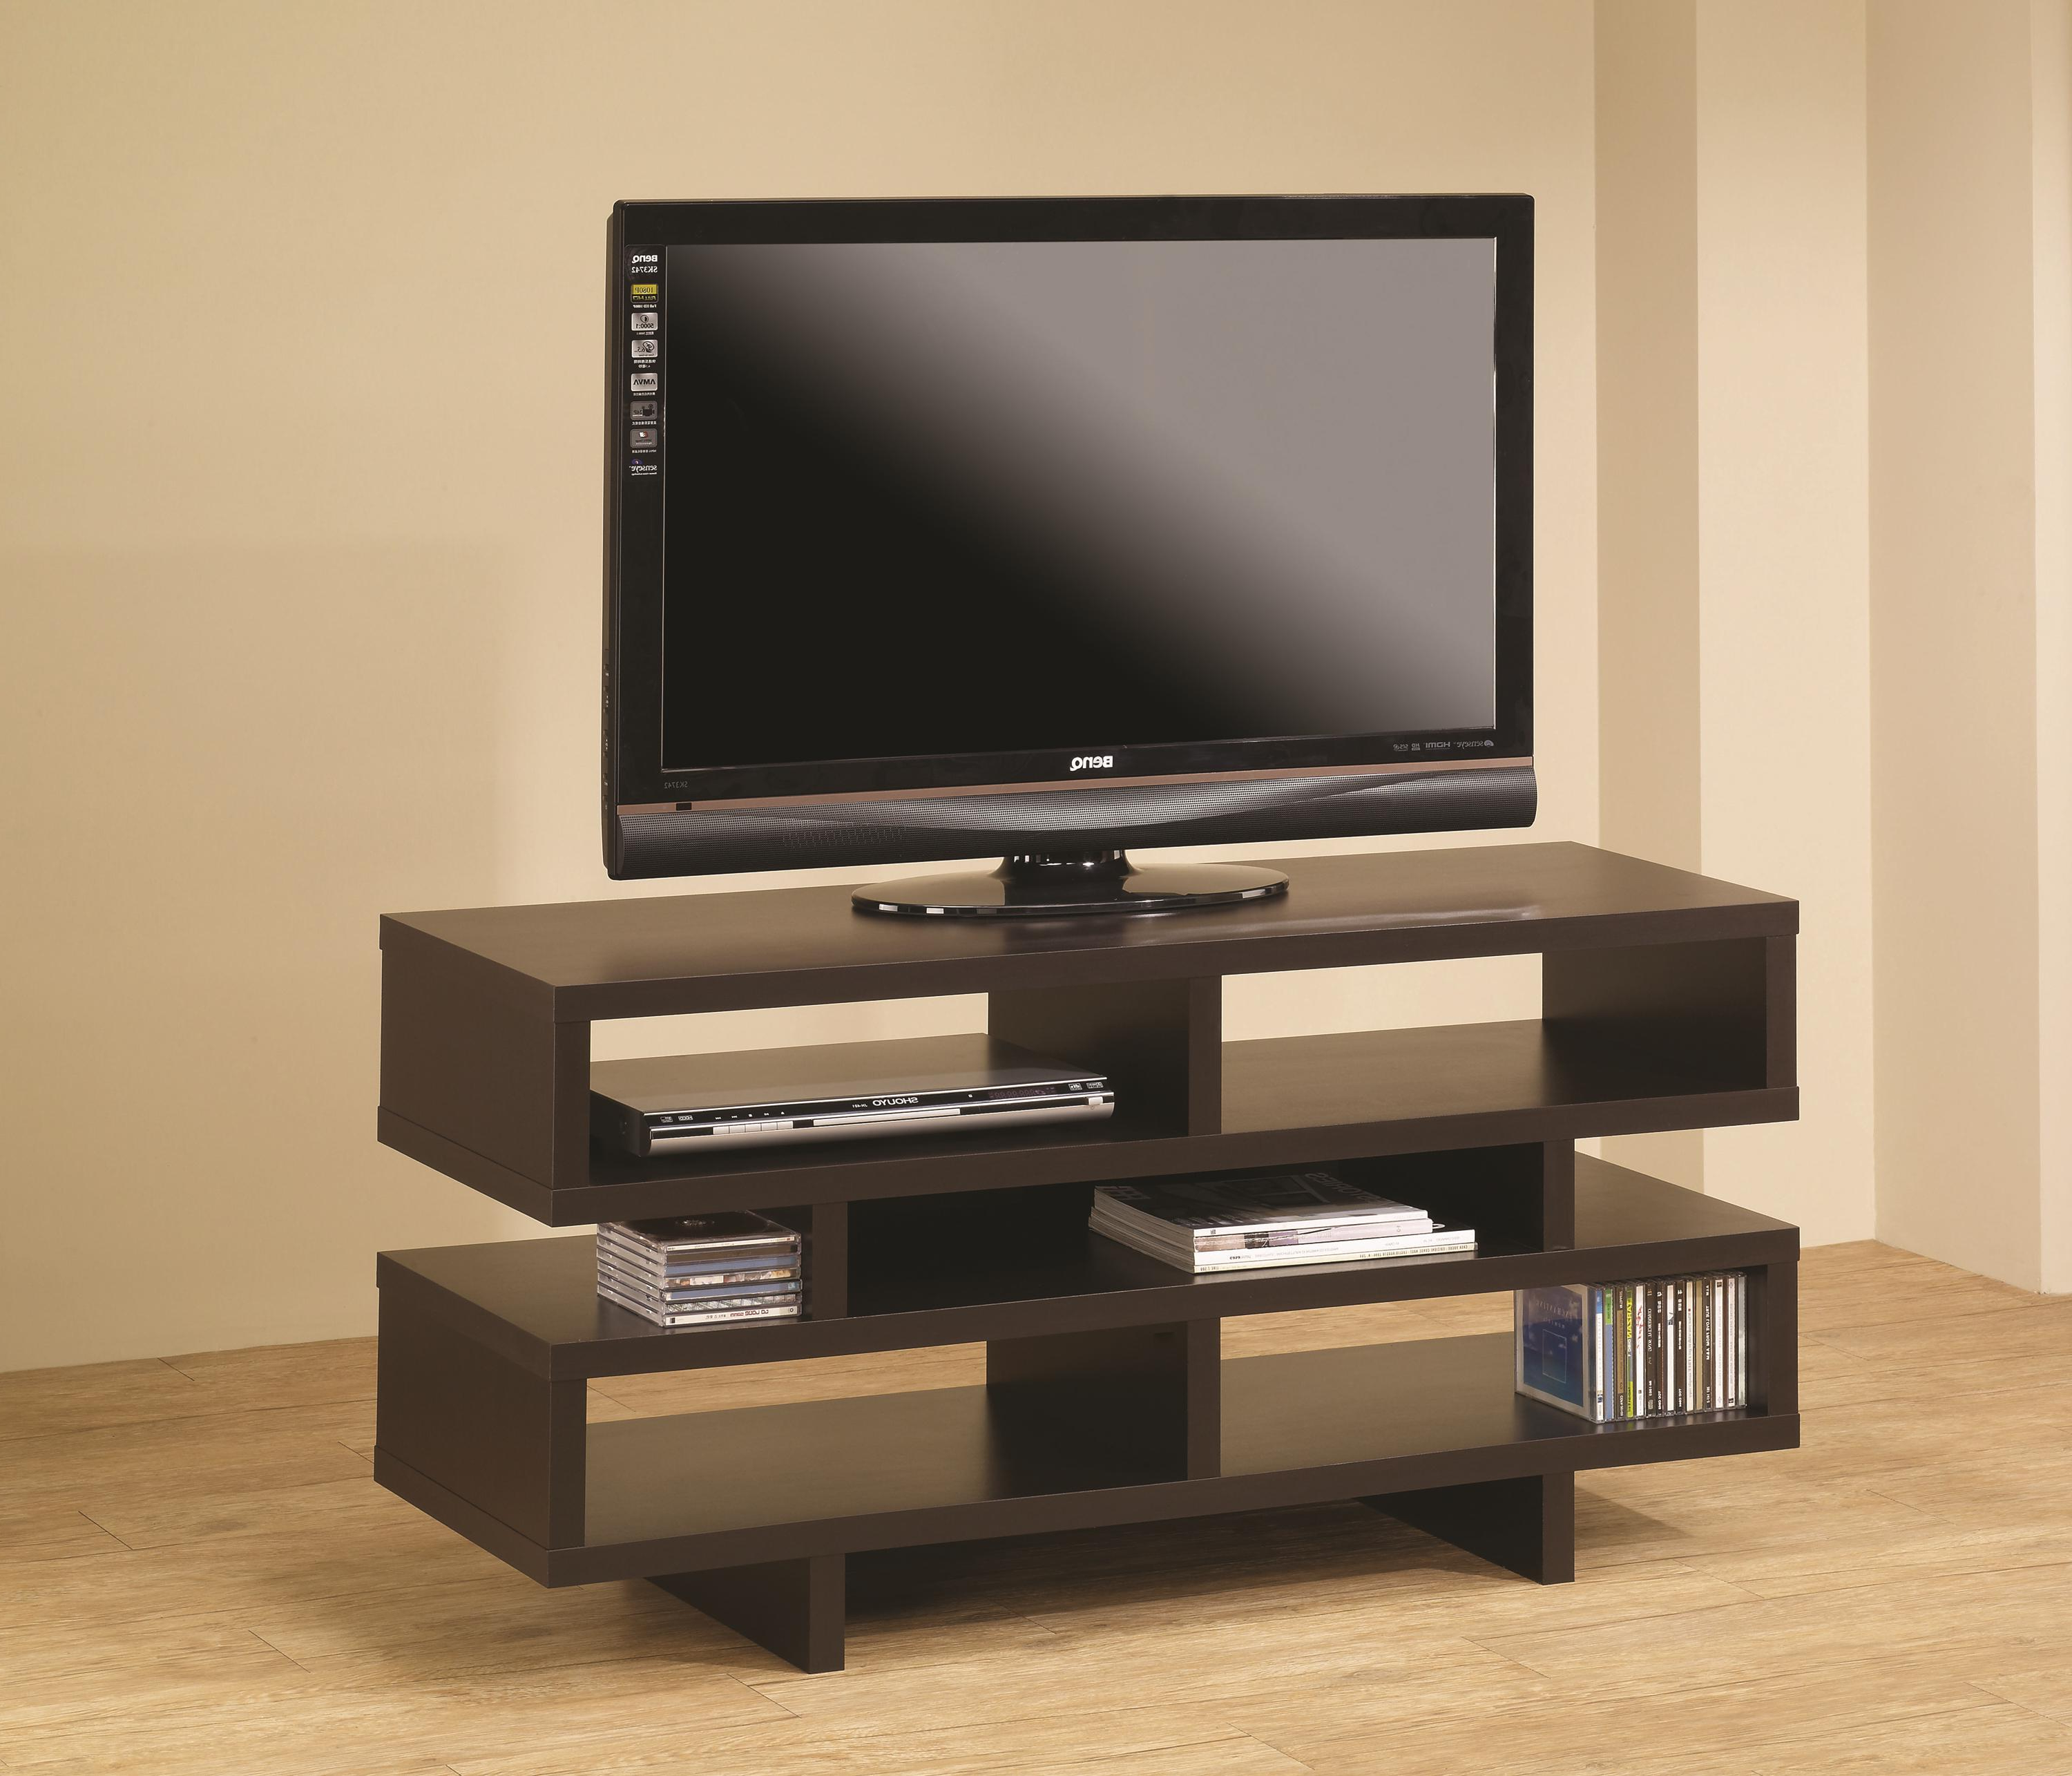 Well Known Coaster Tv Stands Contemporary Tv Console With Open Storage In Wooden Tv Stands For 50 Inch Tv (View 8 of 20)